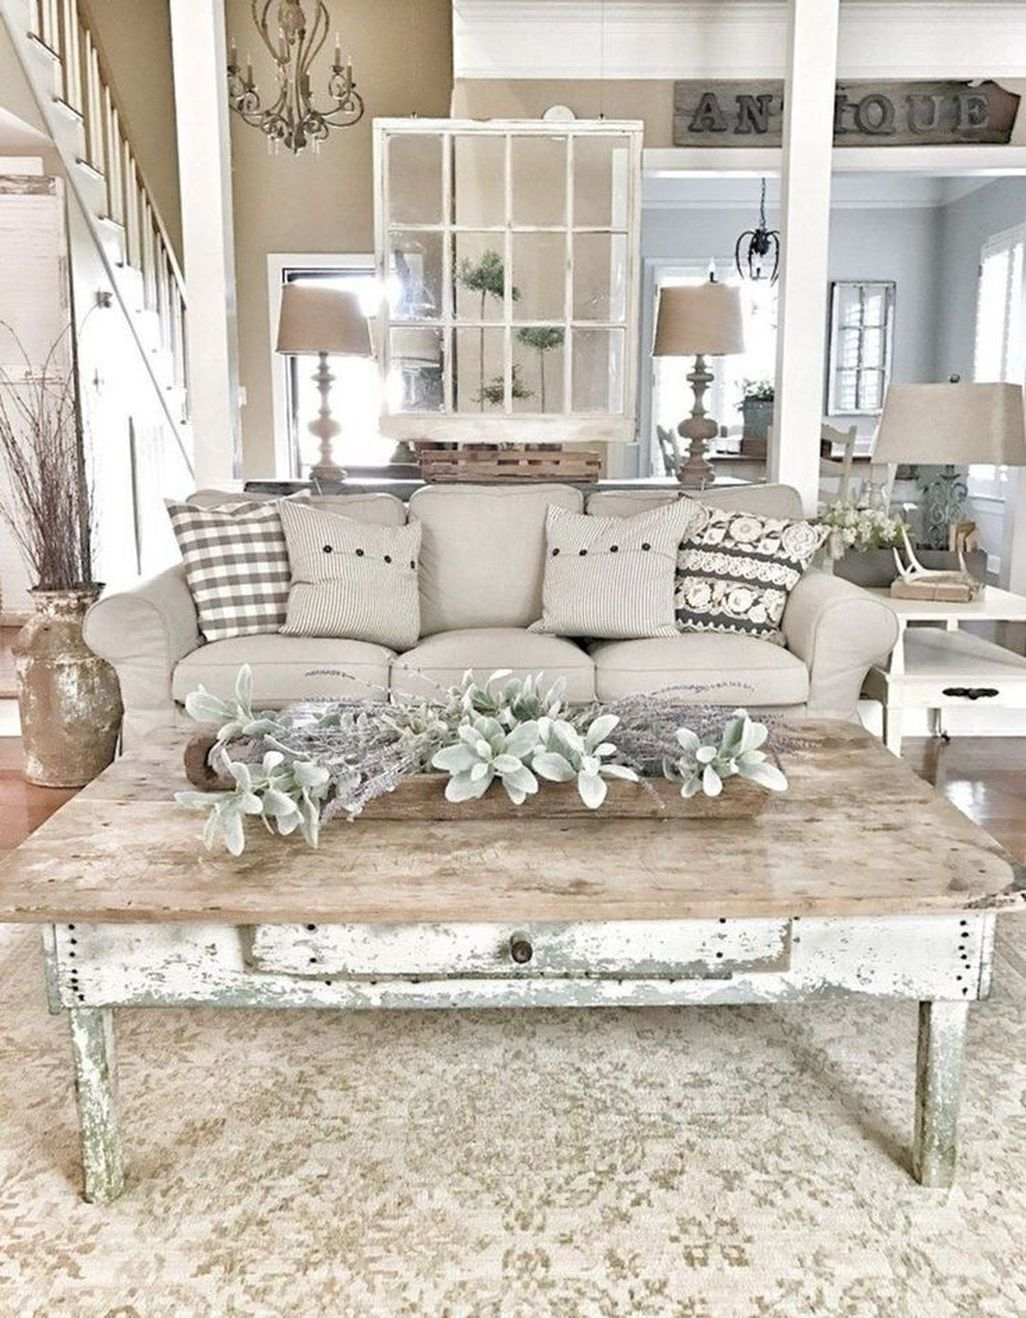 47 Amazing Rustic Farmhouse Living Room Decoration Ideas